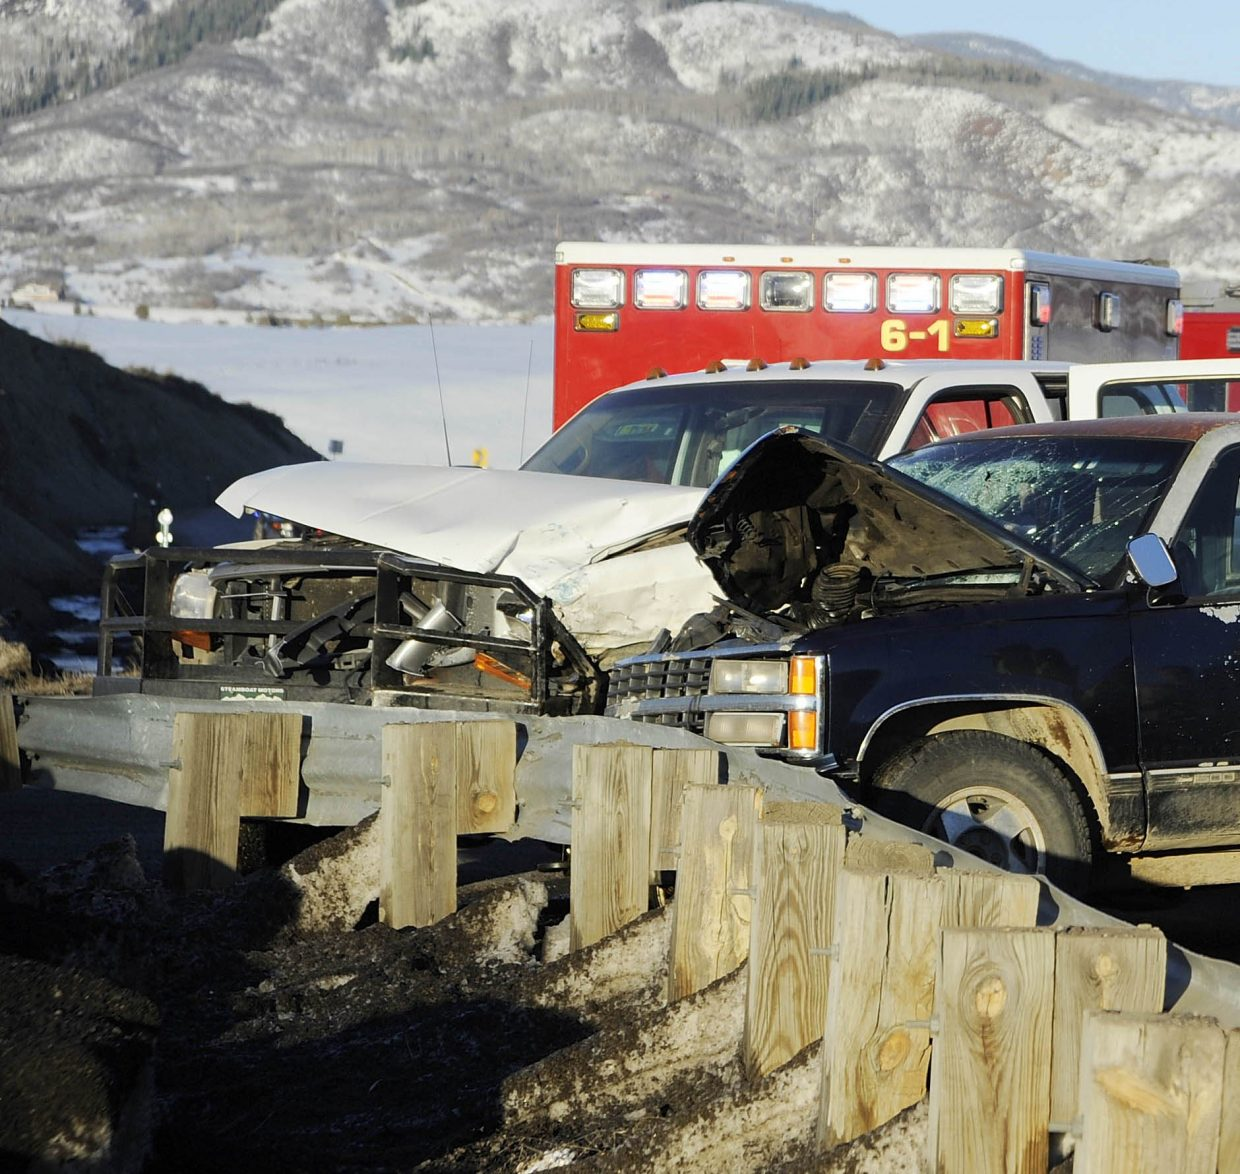 No life-threatening injuries were reported in this 2016 crash into a guardrail at U.S. Highway 40 and Routt County Road 42.